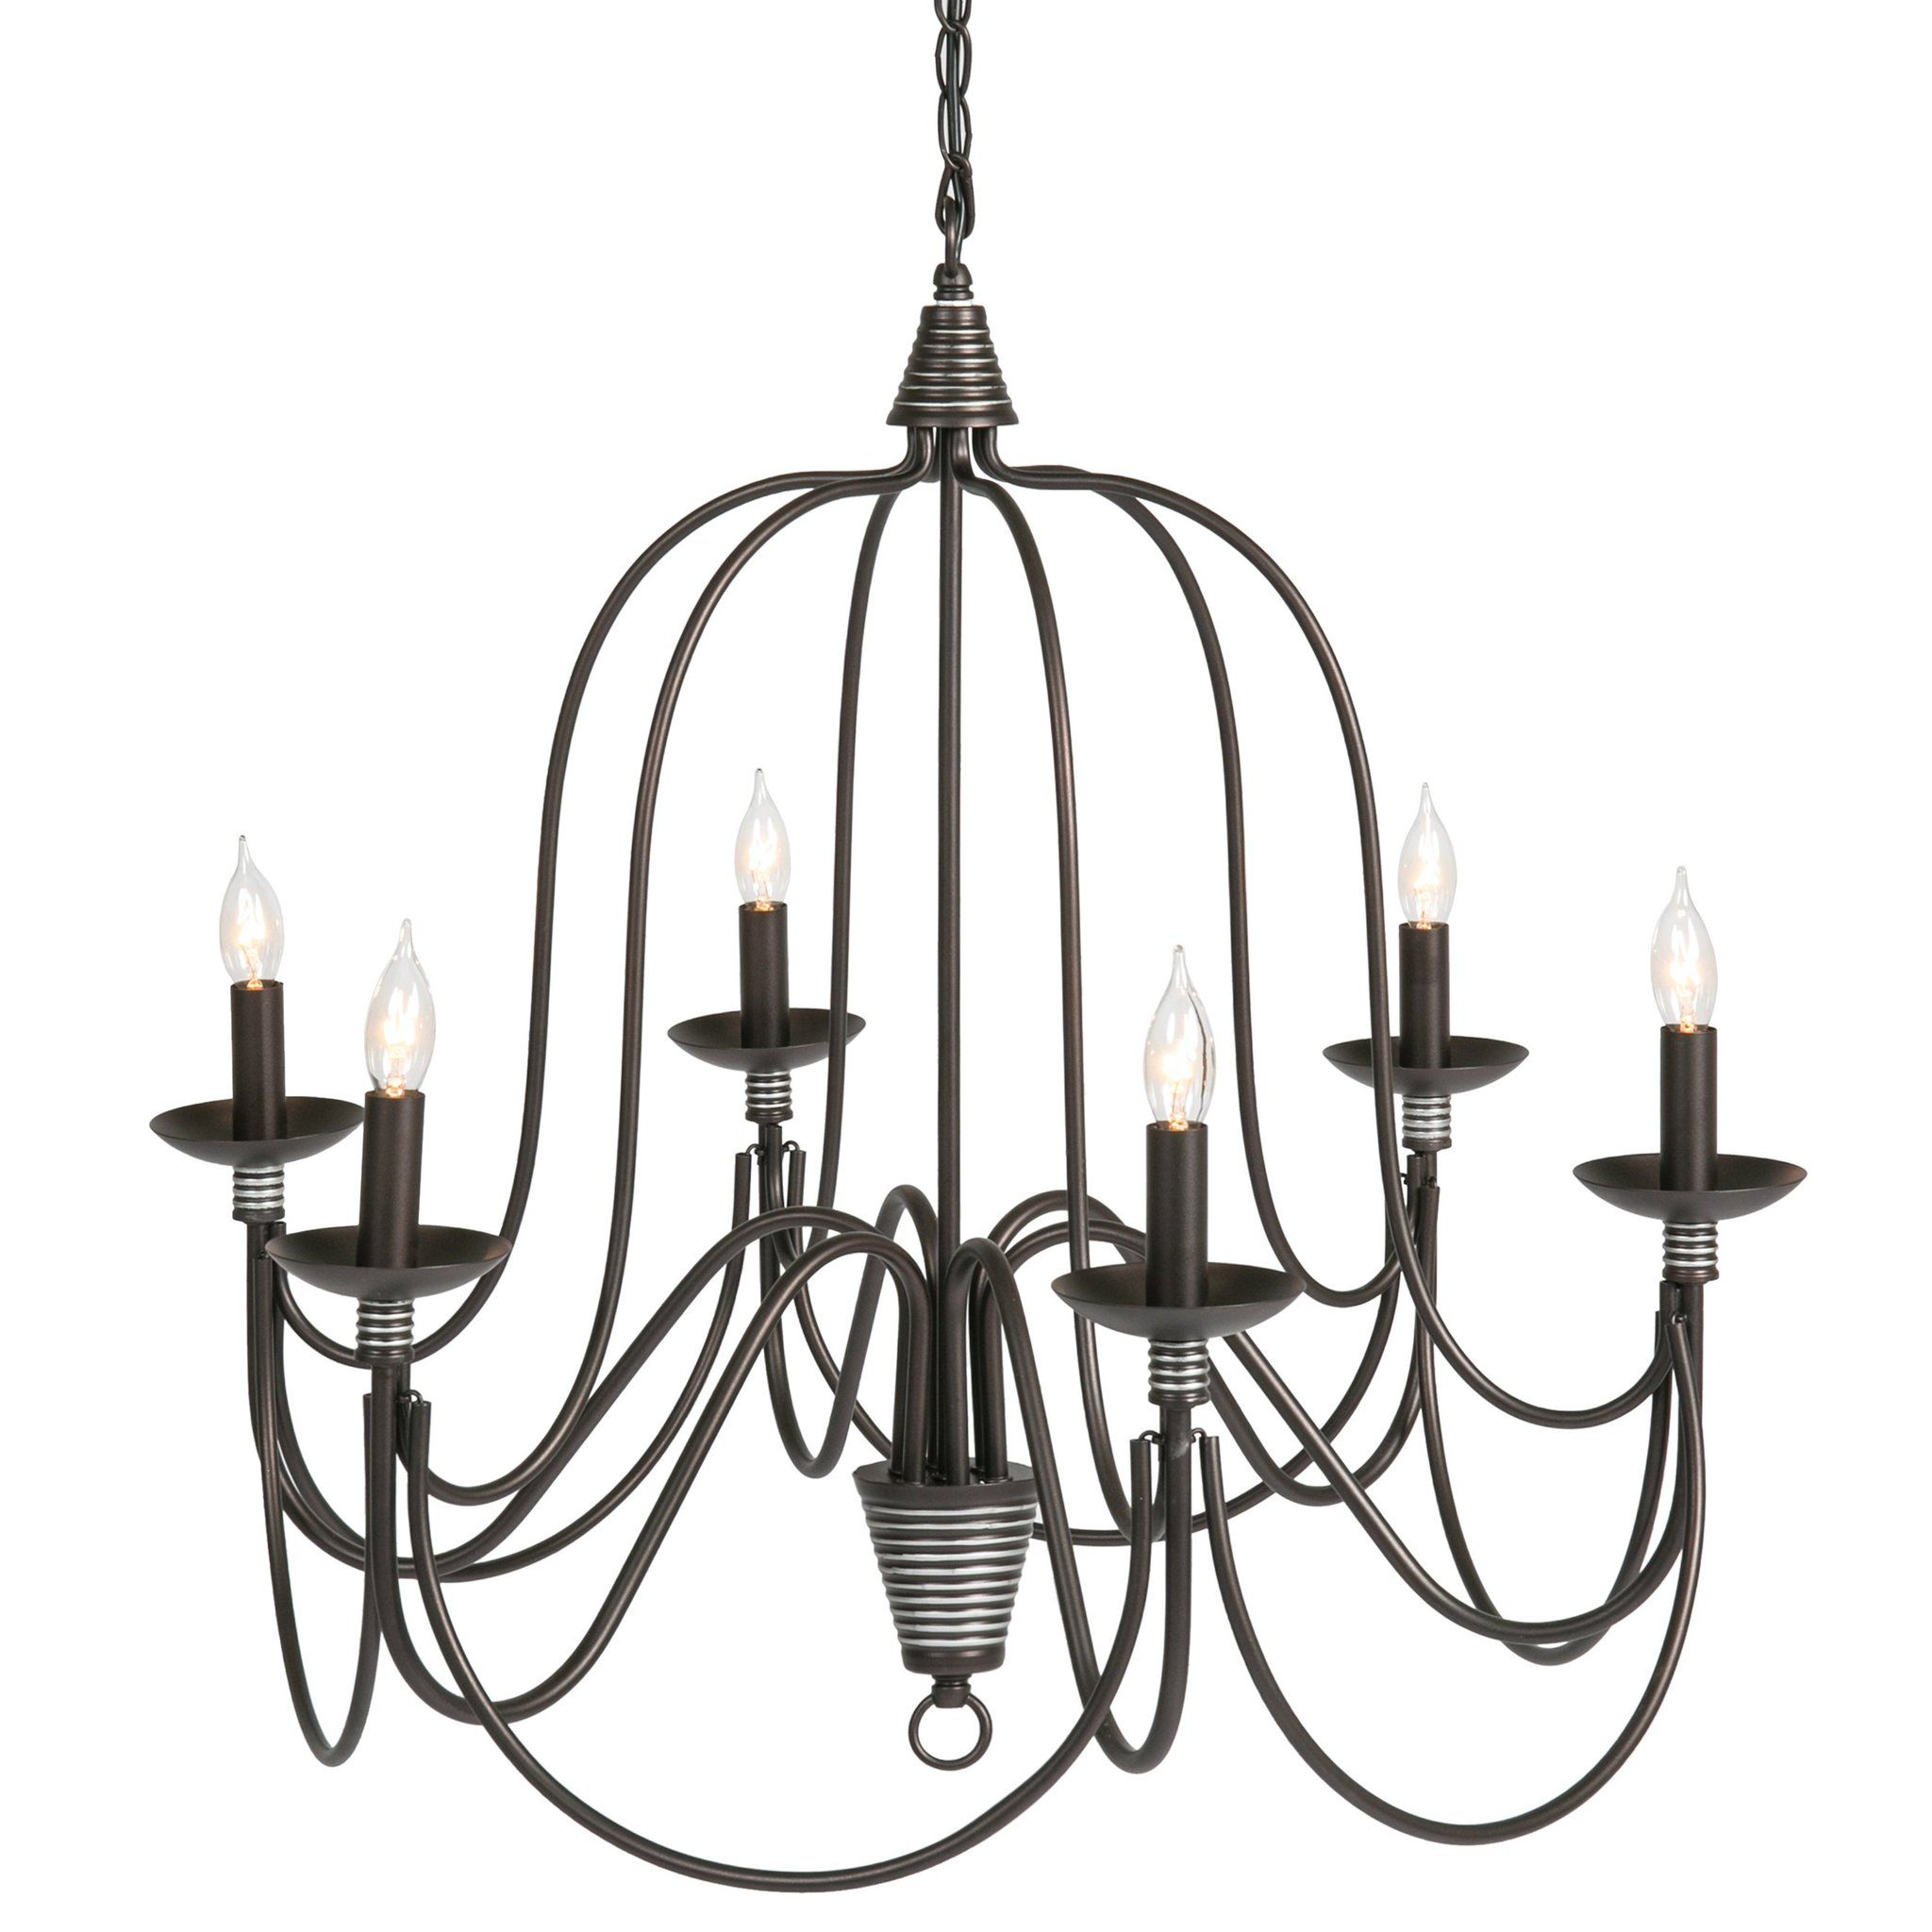 Home 6 Light Ceiling Candle Chandelier Hanging Fixture W Bronze